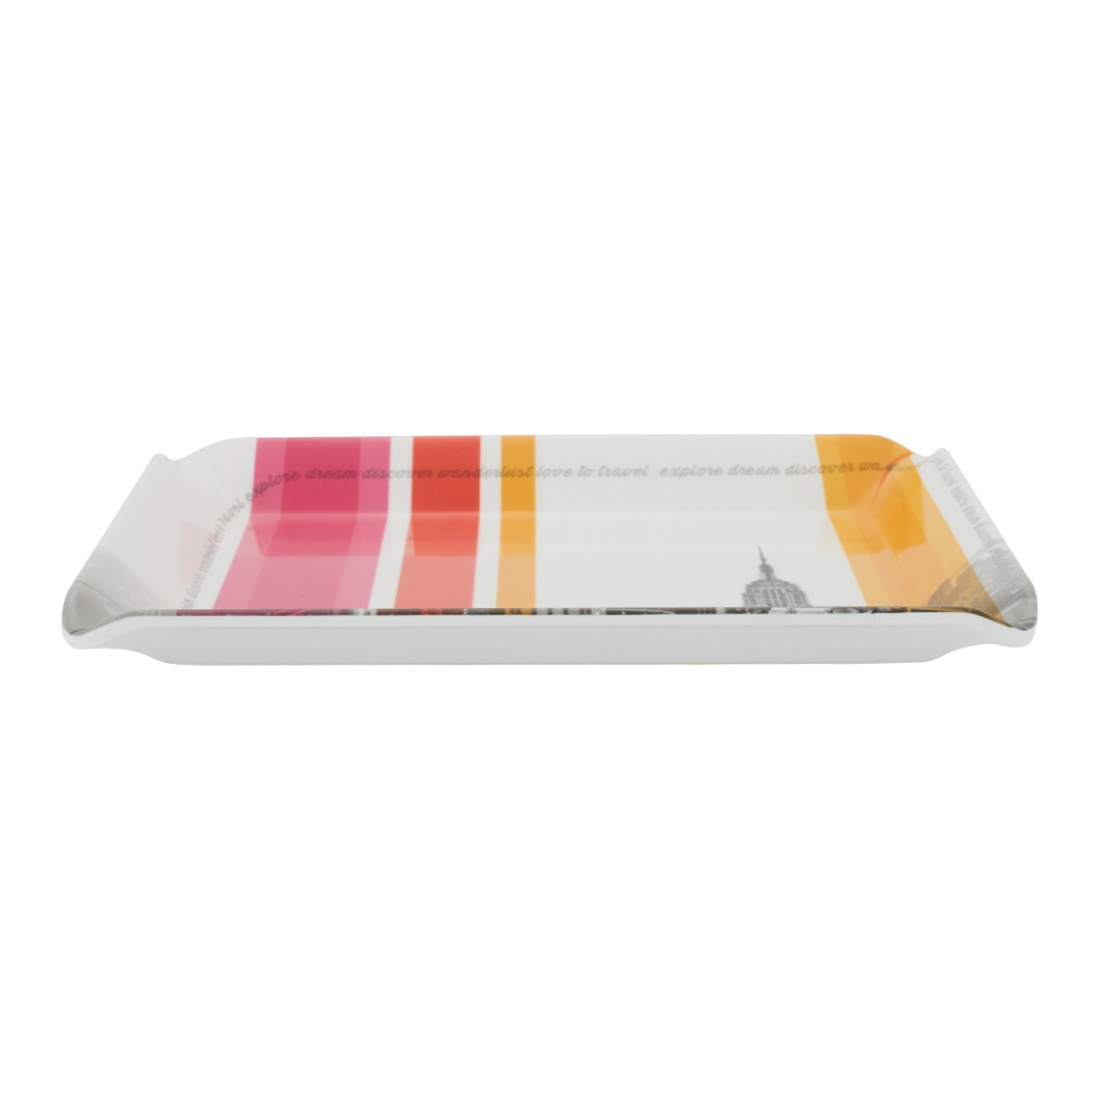 5Th Avenue Small Tray Food Grade Melamine Trays in Multi Colour Colour by Living Essence